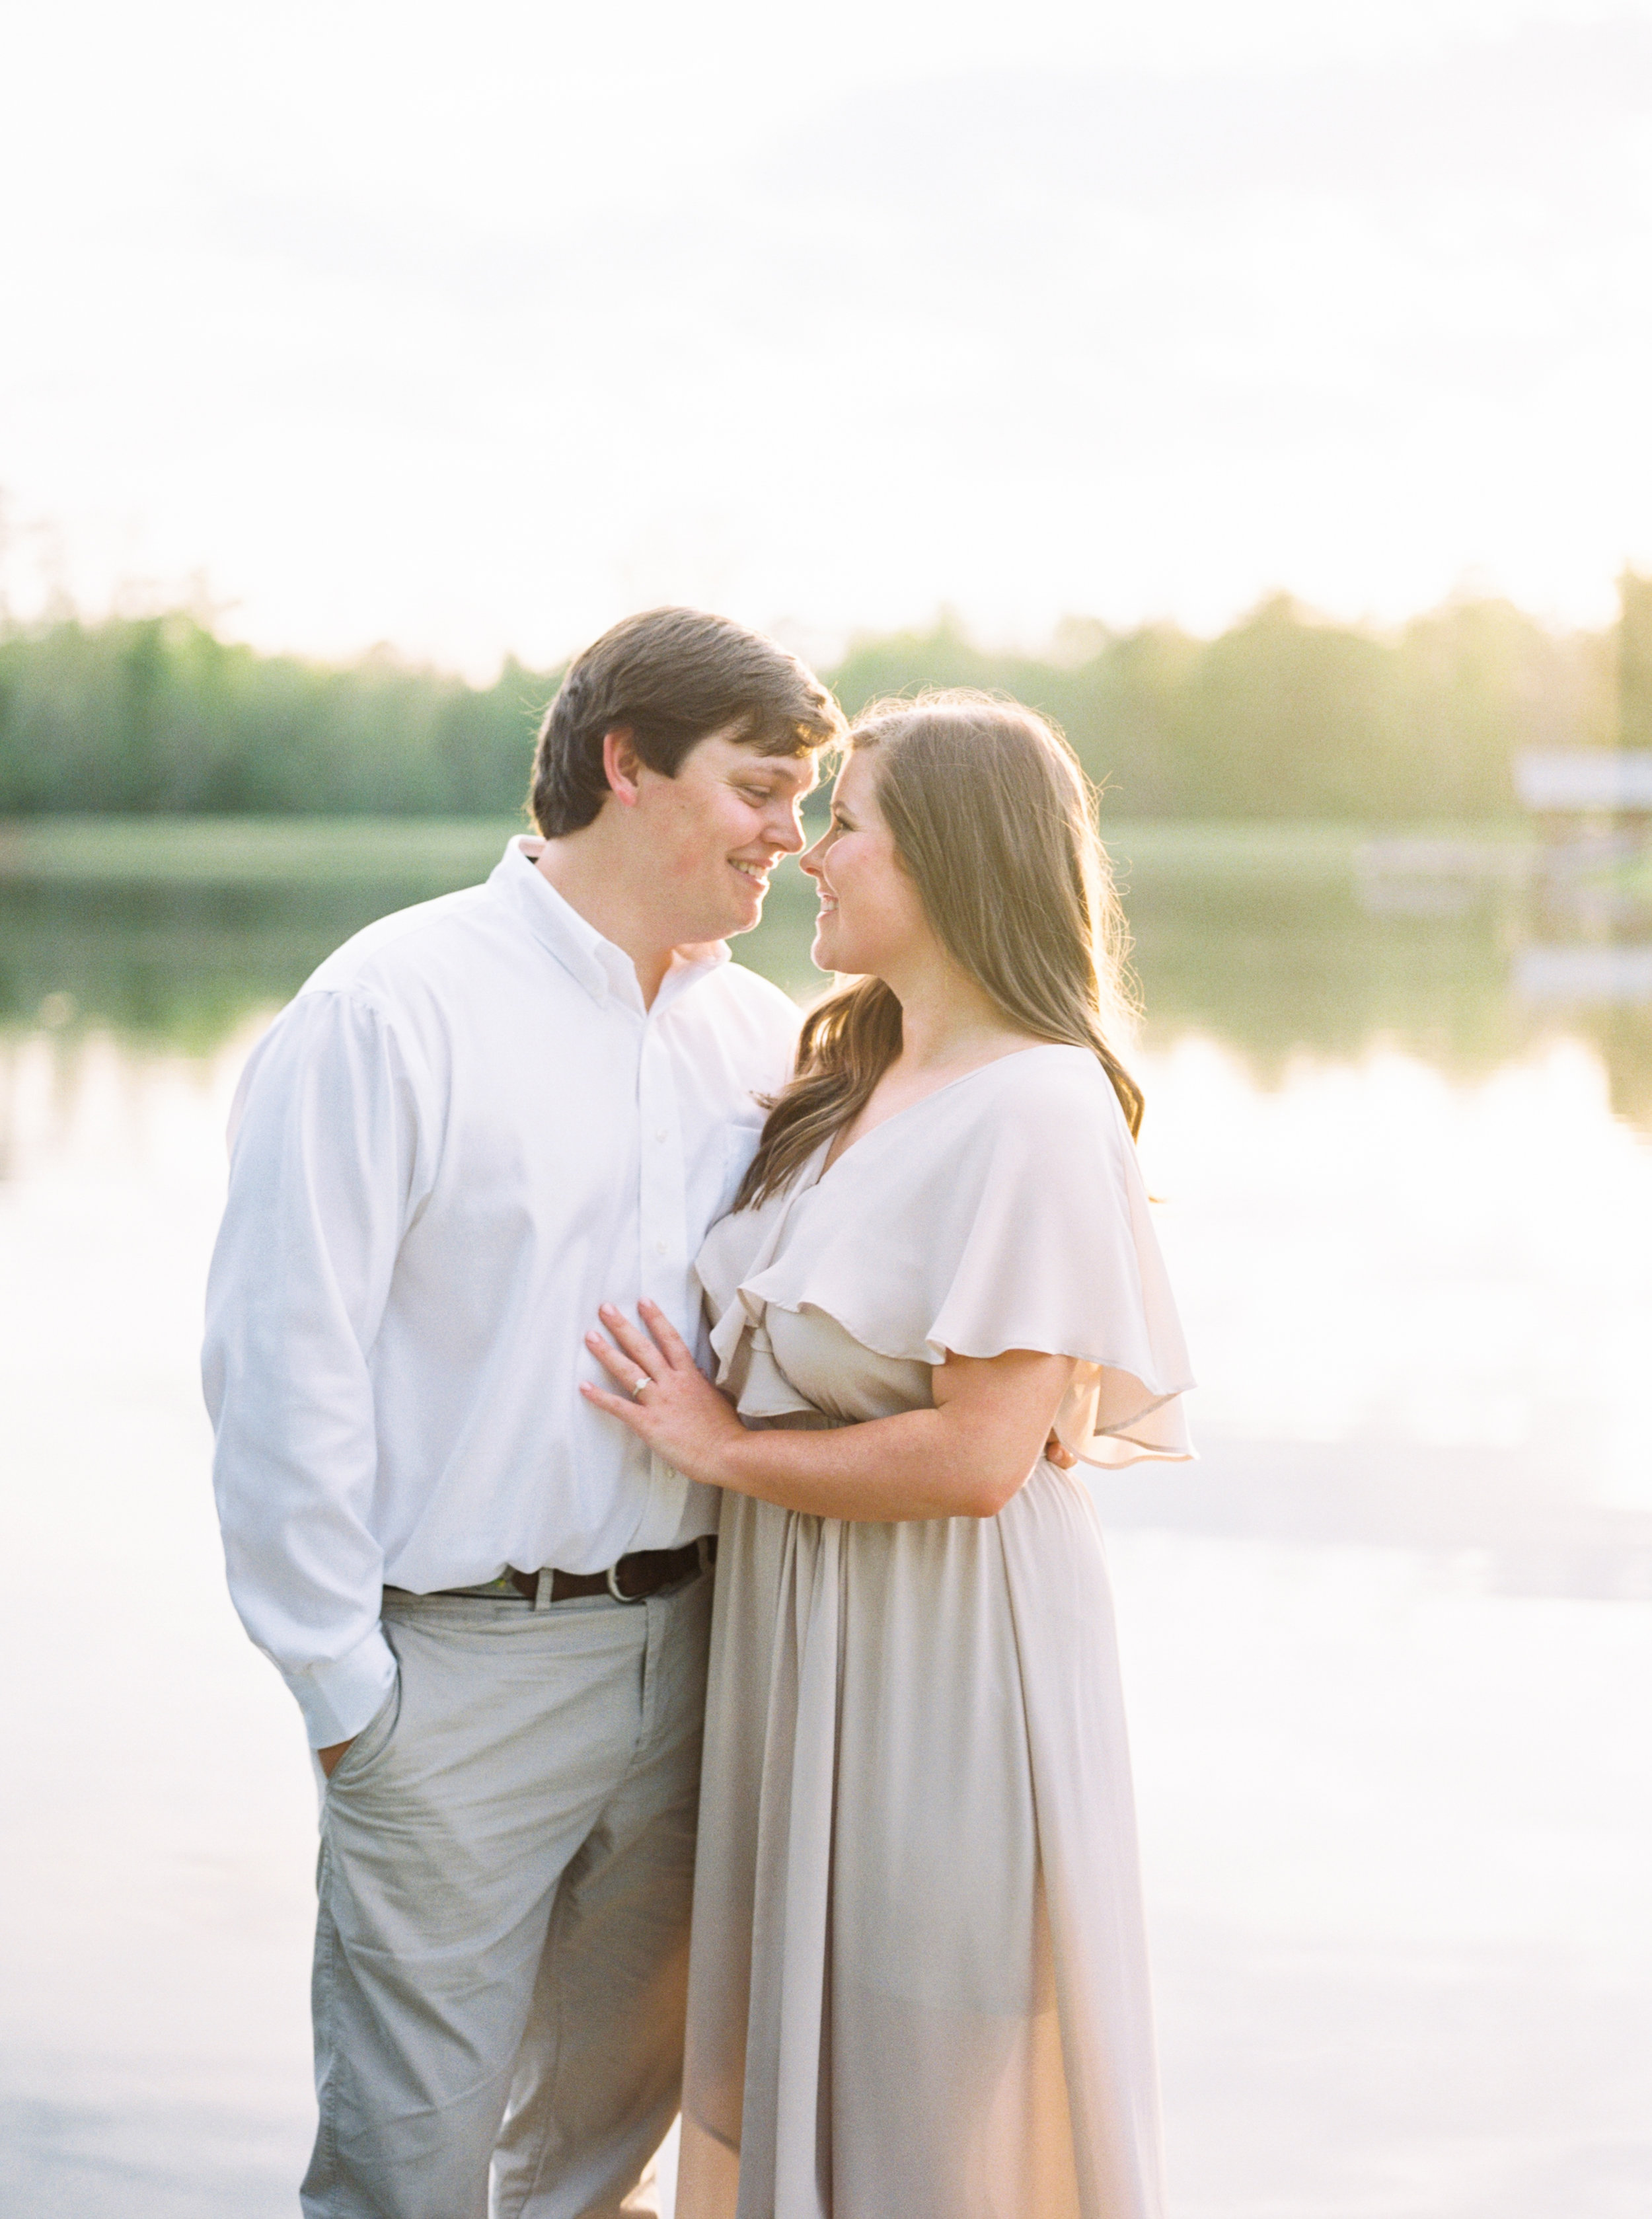 Landon_Grant_Carter_Film_Engagement_Session_Lake_Fallen_Photography_Columbus_Georgia-63.JPG